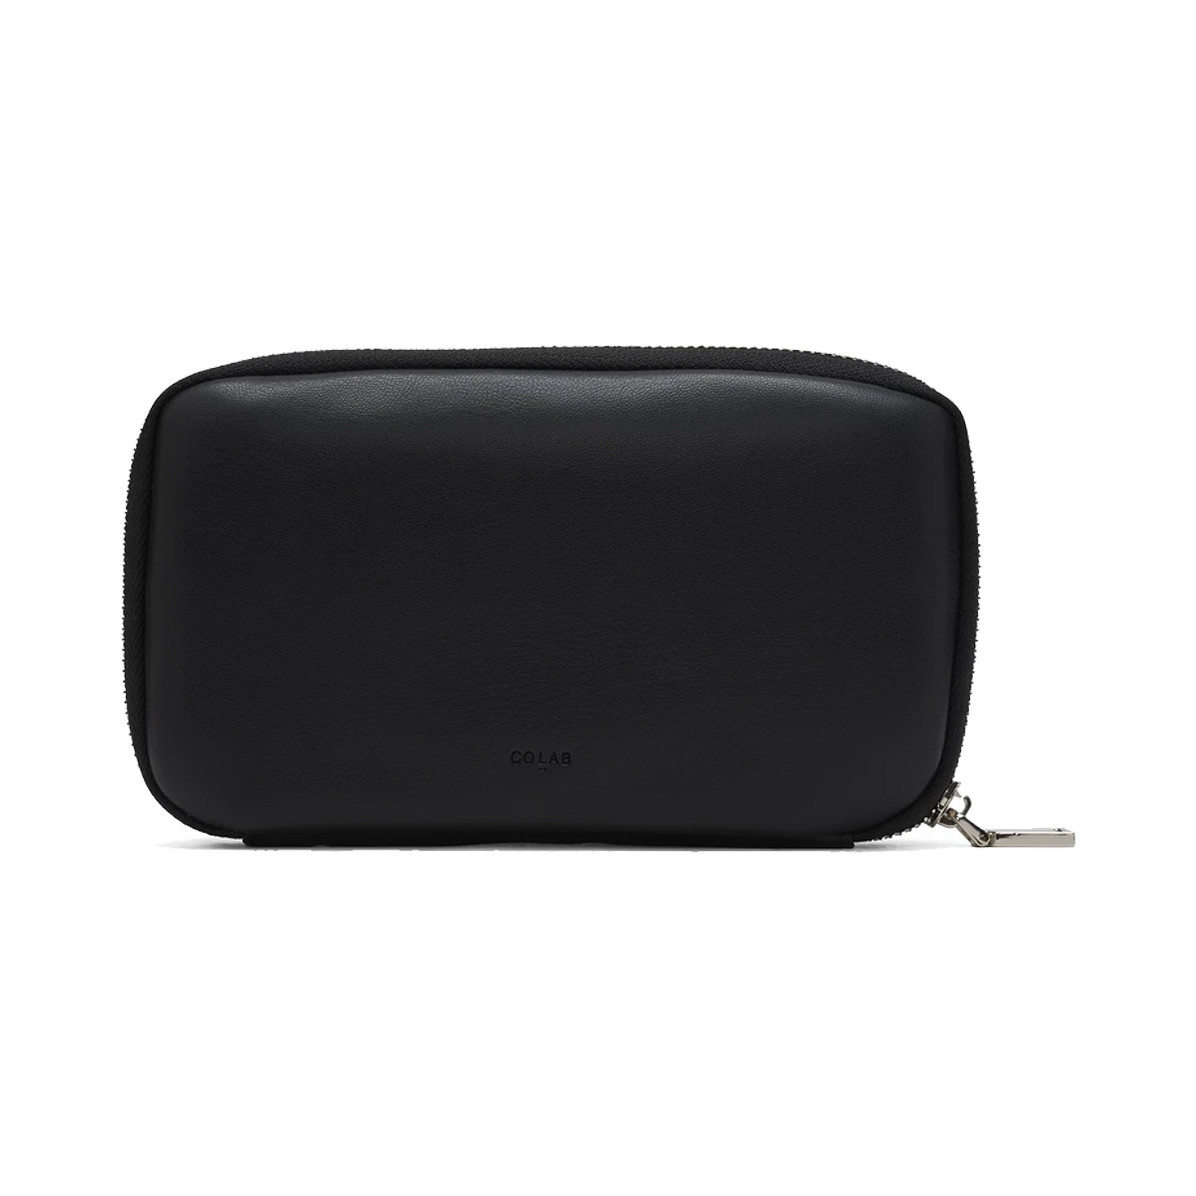 Colab Colab Smooth World Vegan Leather Wallet Black